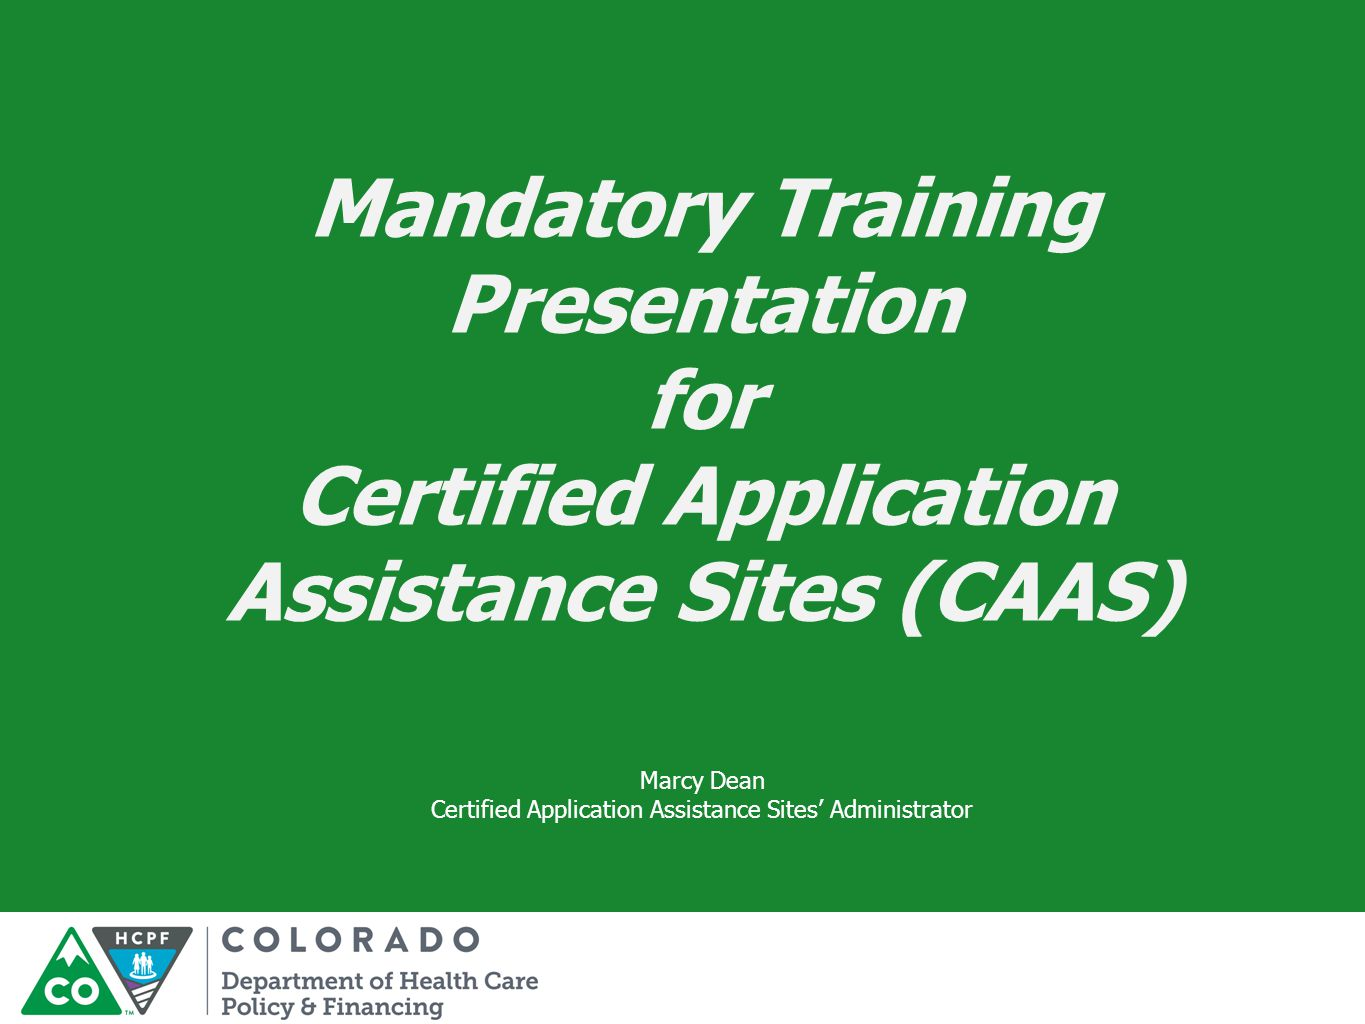 Certified Application Assistance Sites' Administrator